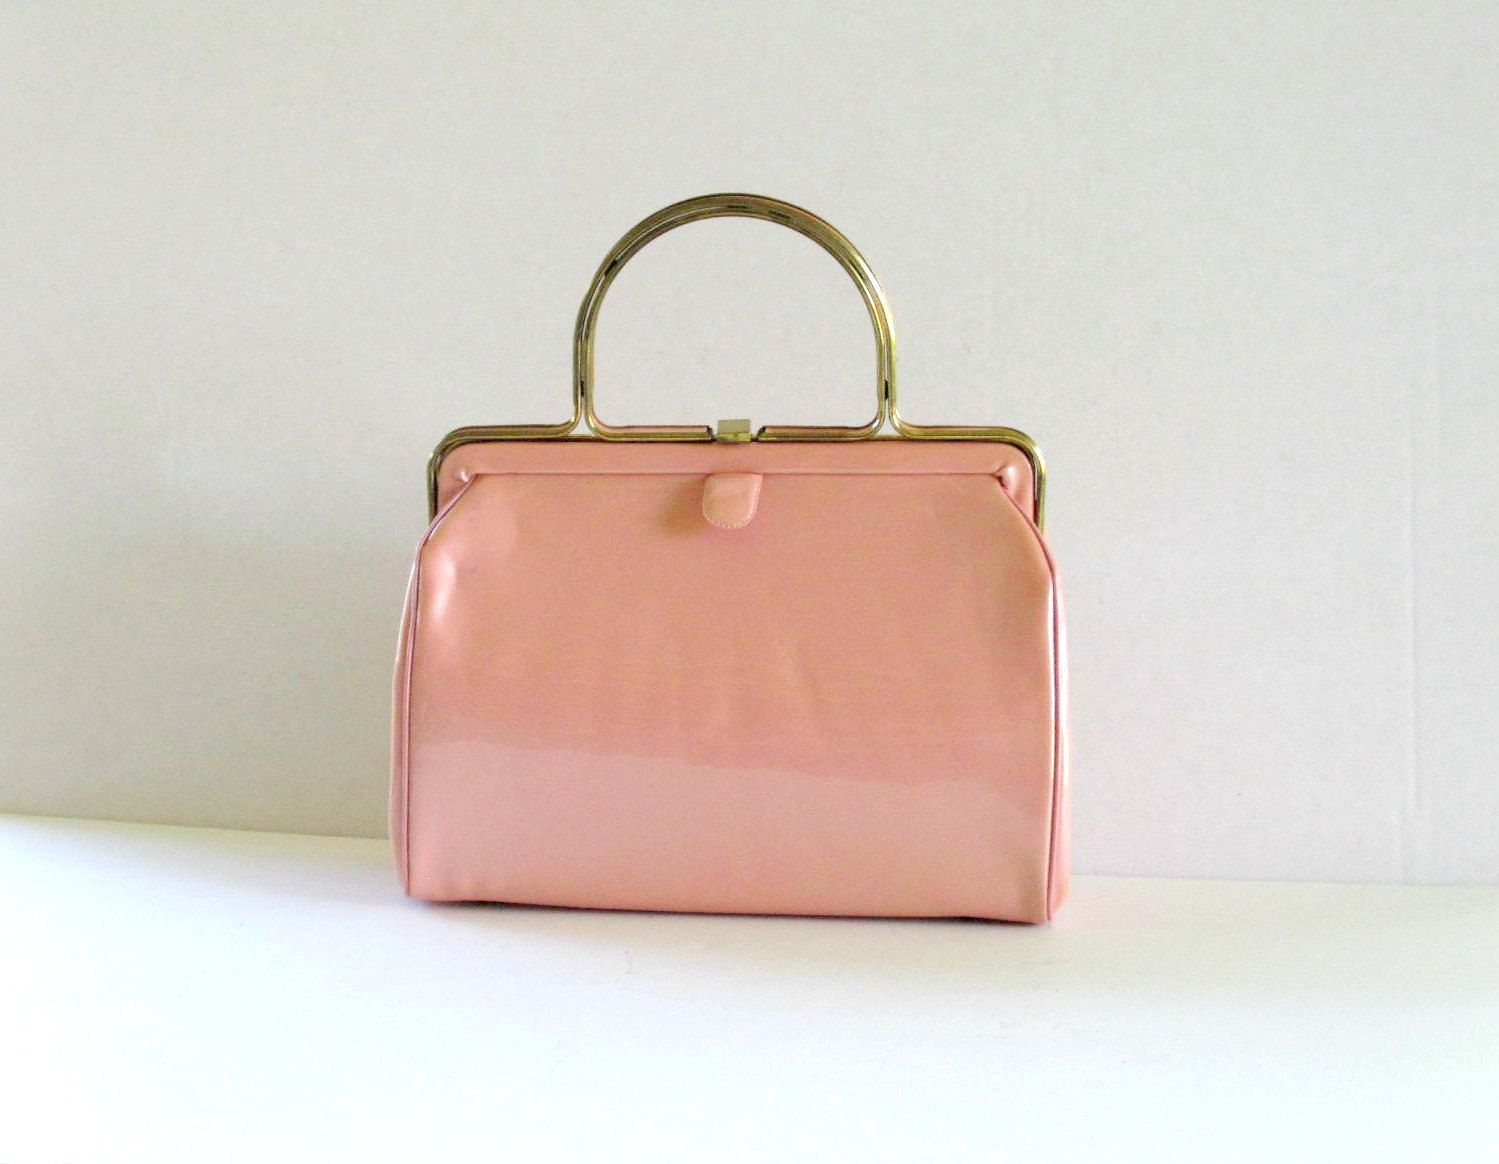 vintage handbags | Vintage Handbag Purse Bag - Patent Leather Pink ...